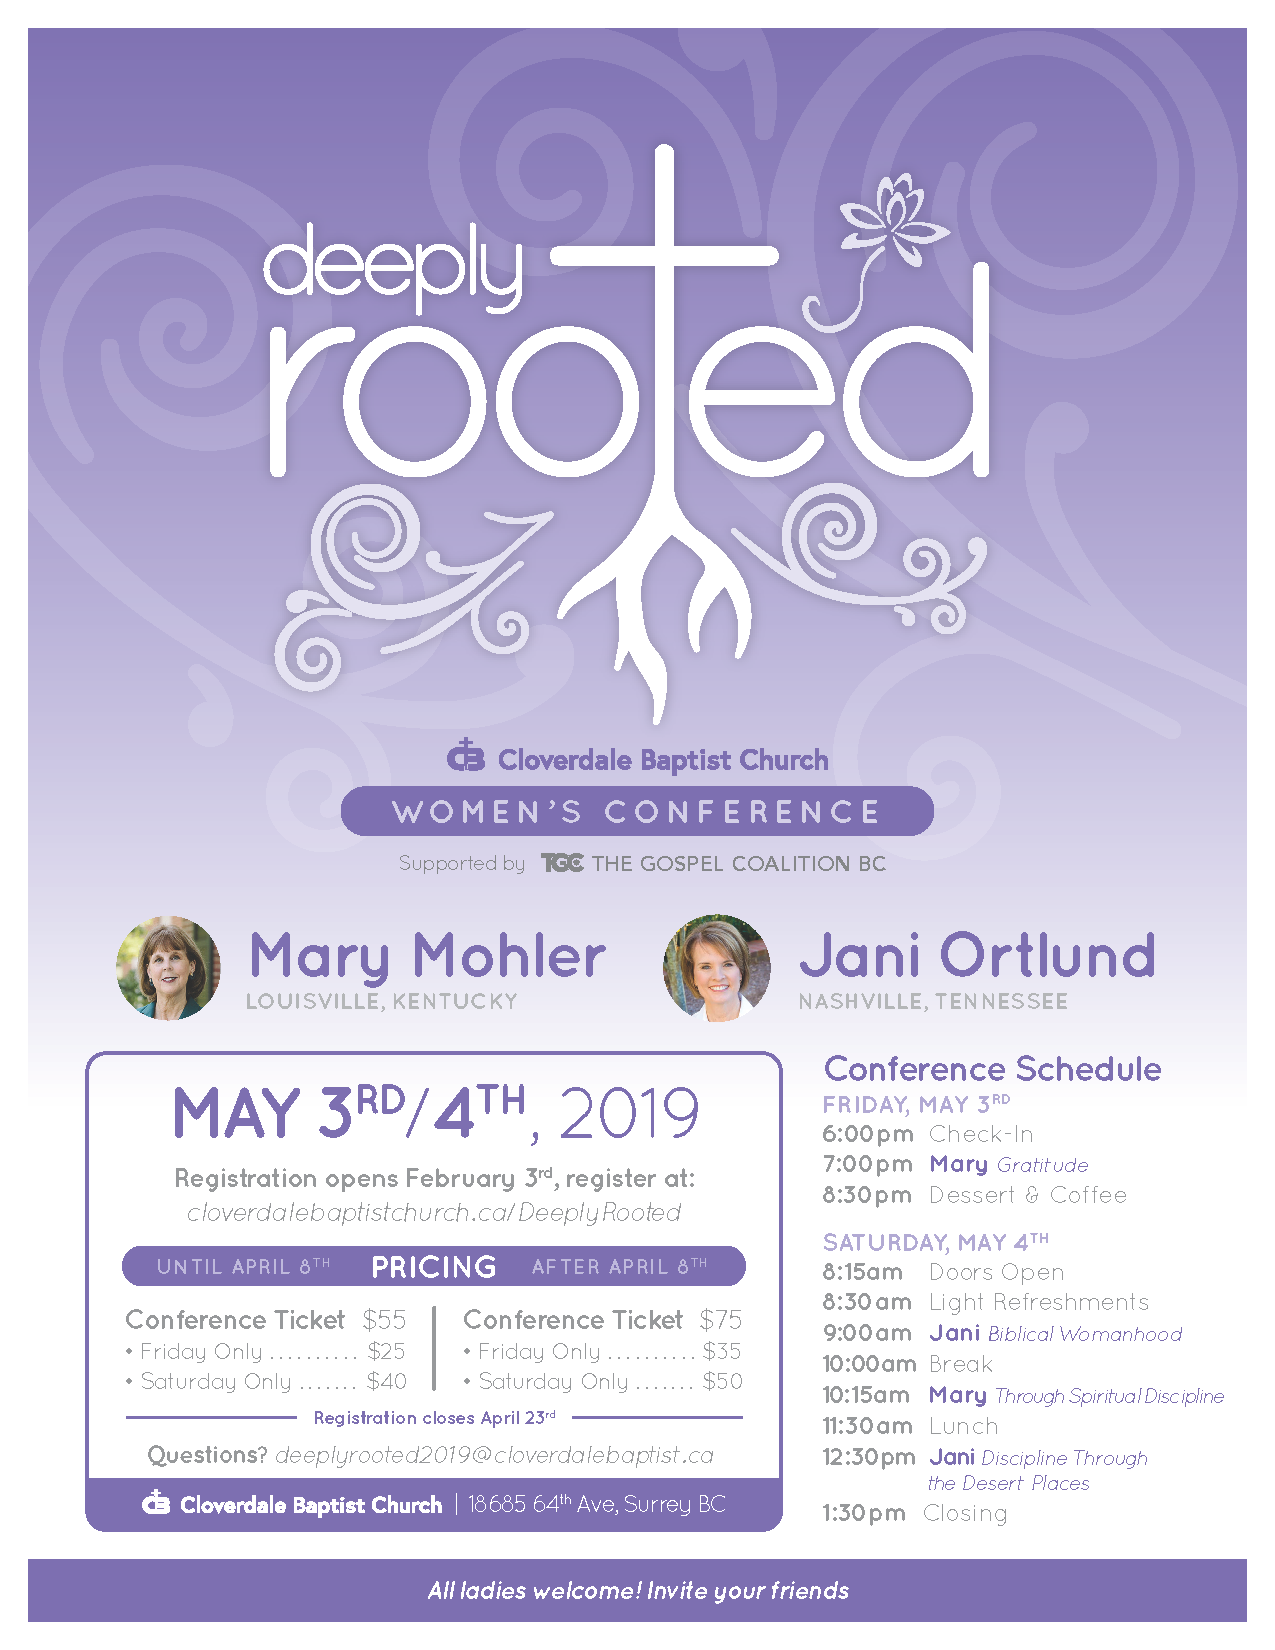 Cloverdale Baptist Church - Deeply Rooted Conference